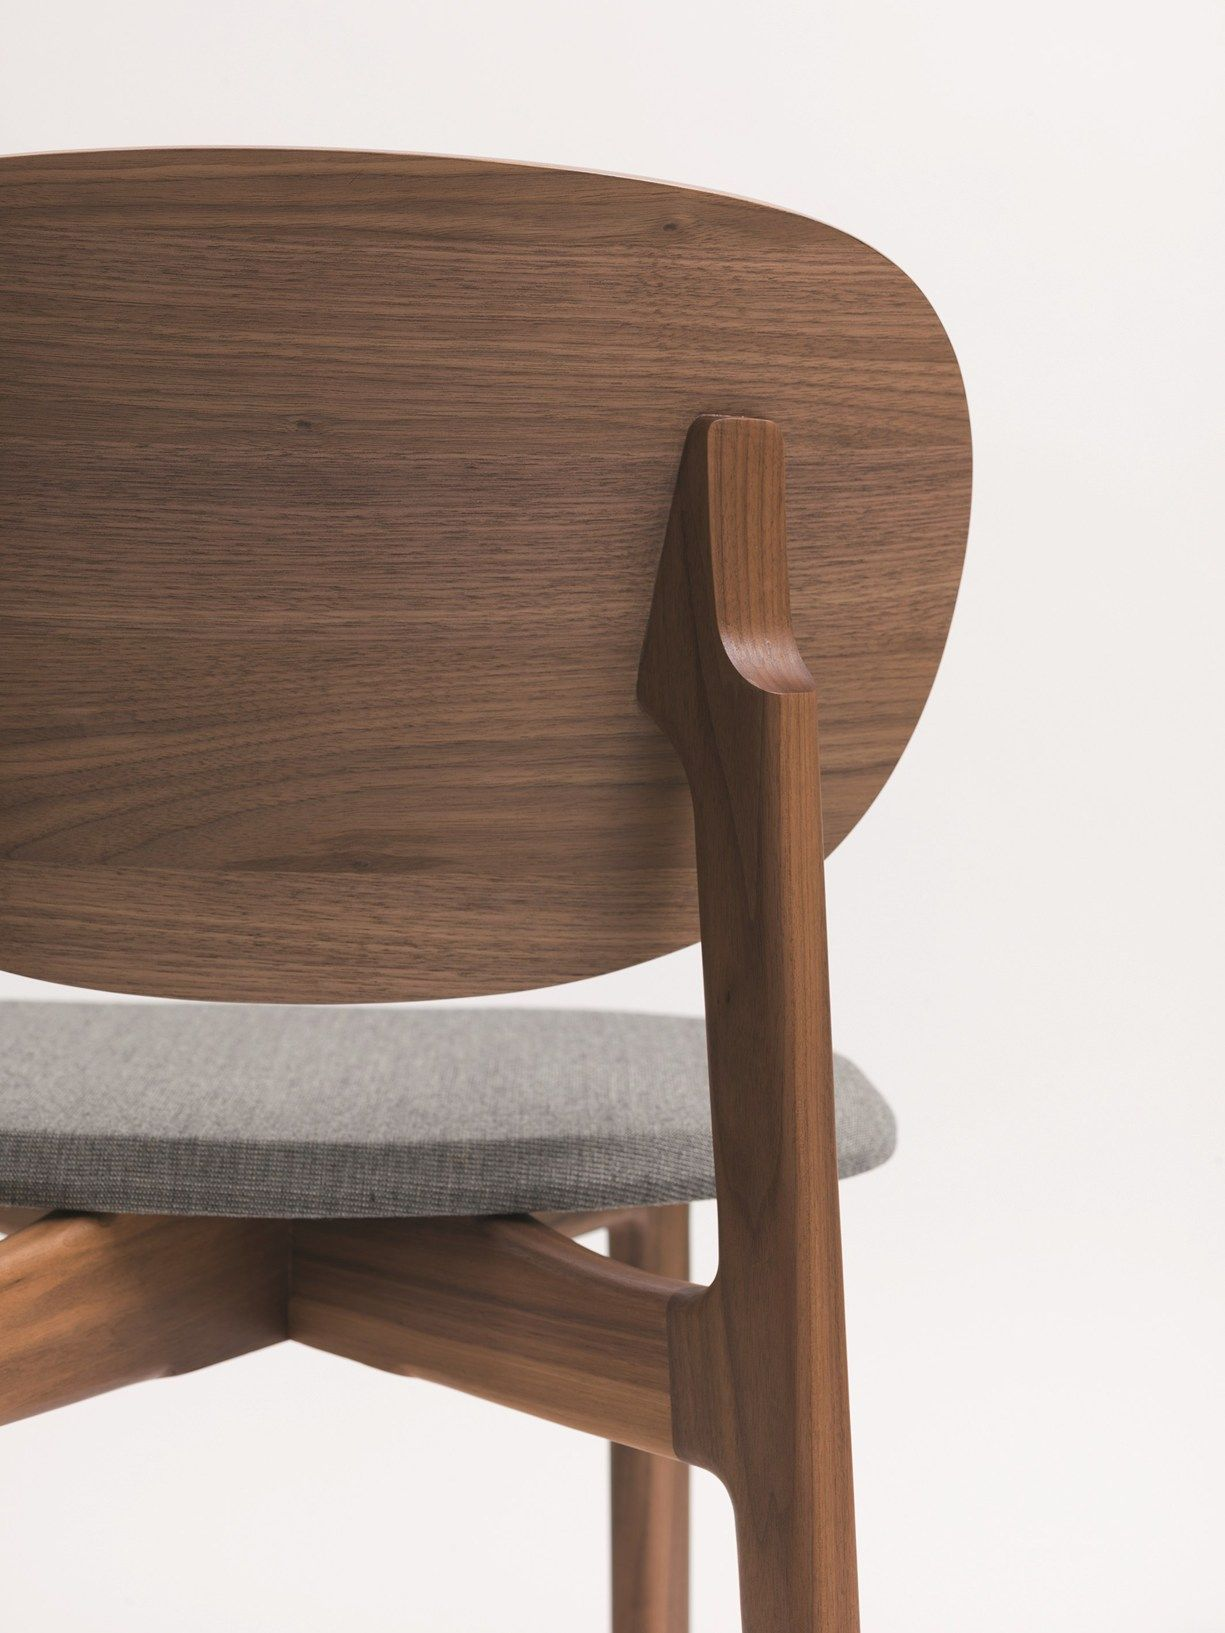 zenso by formstelle new zeitraum seatings collection of sculptural rh pinterest com